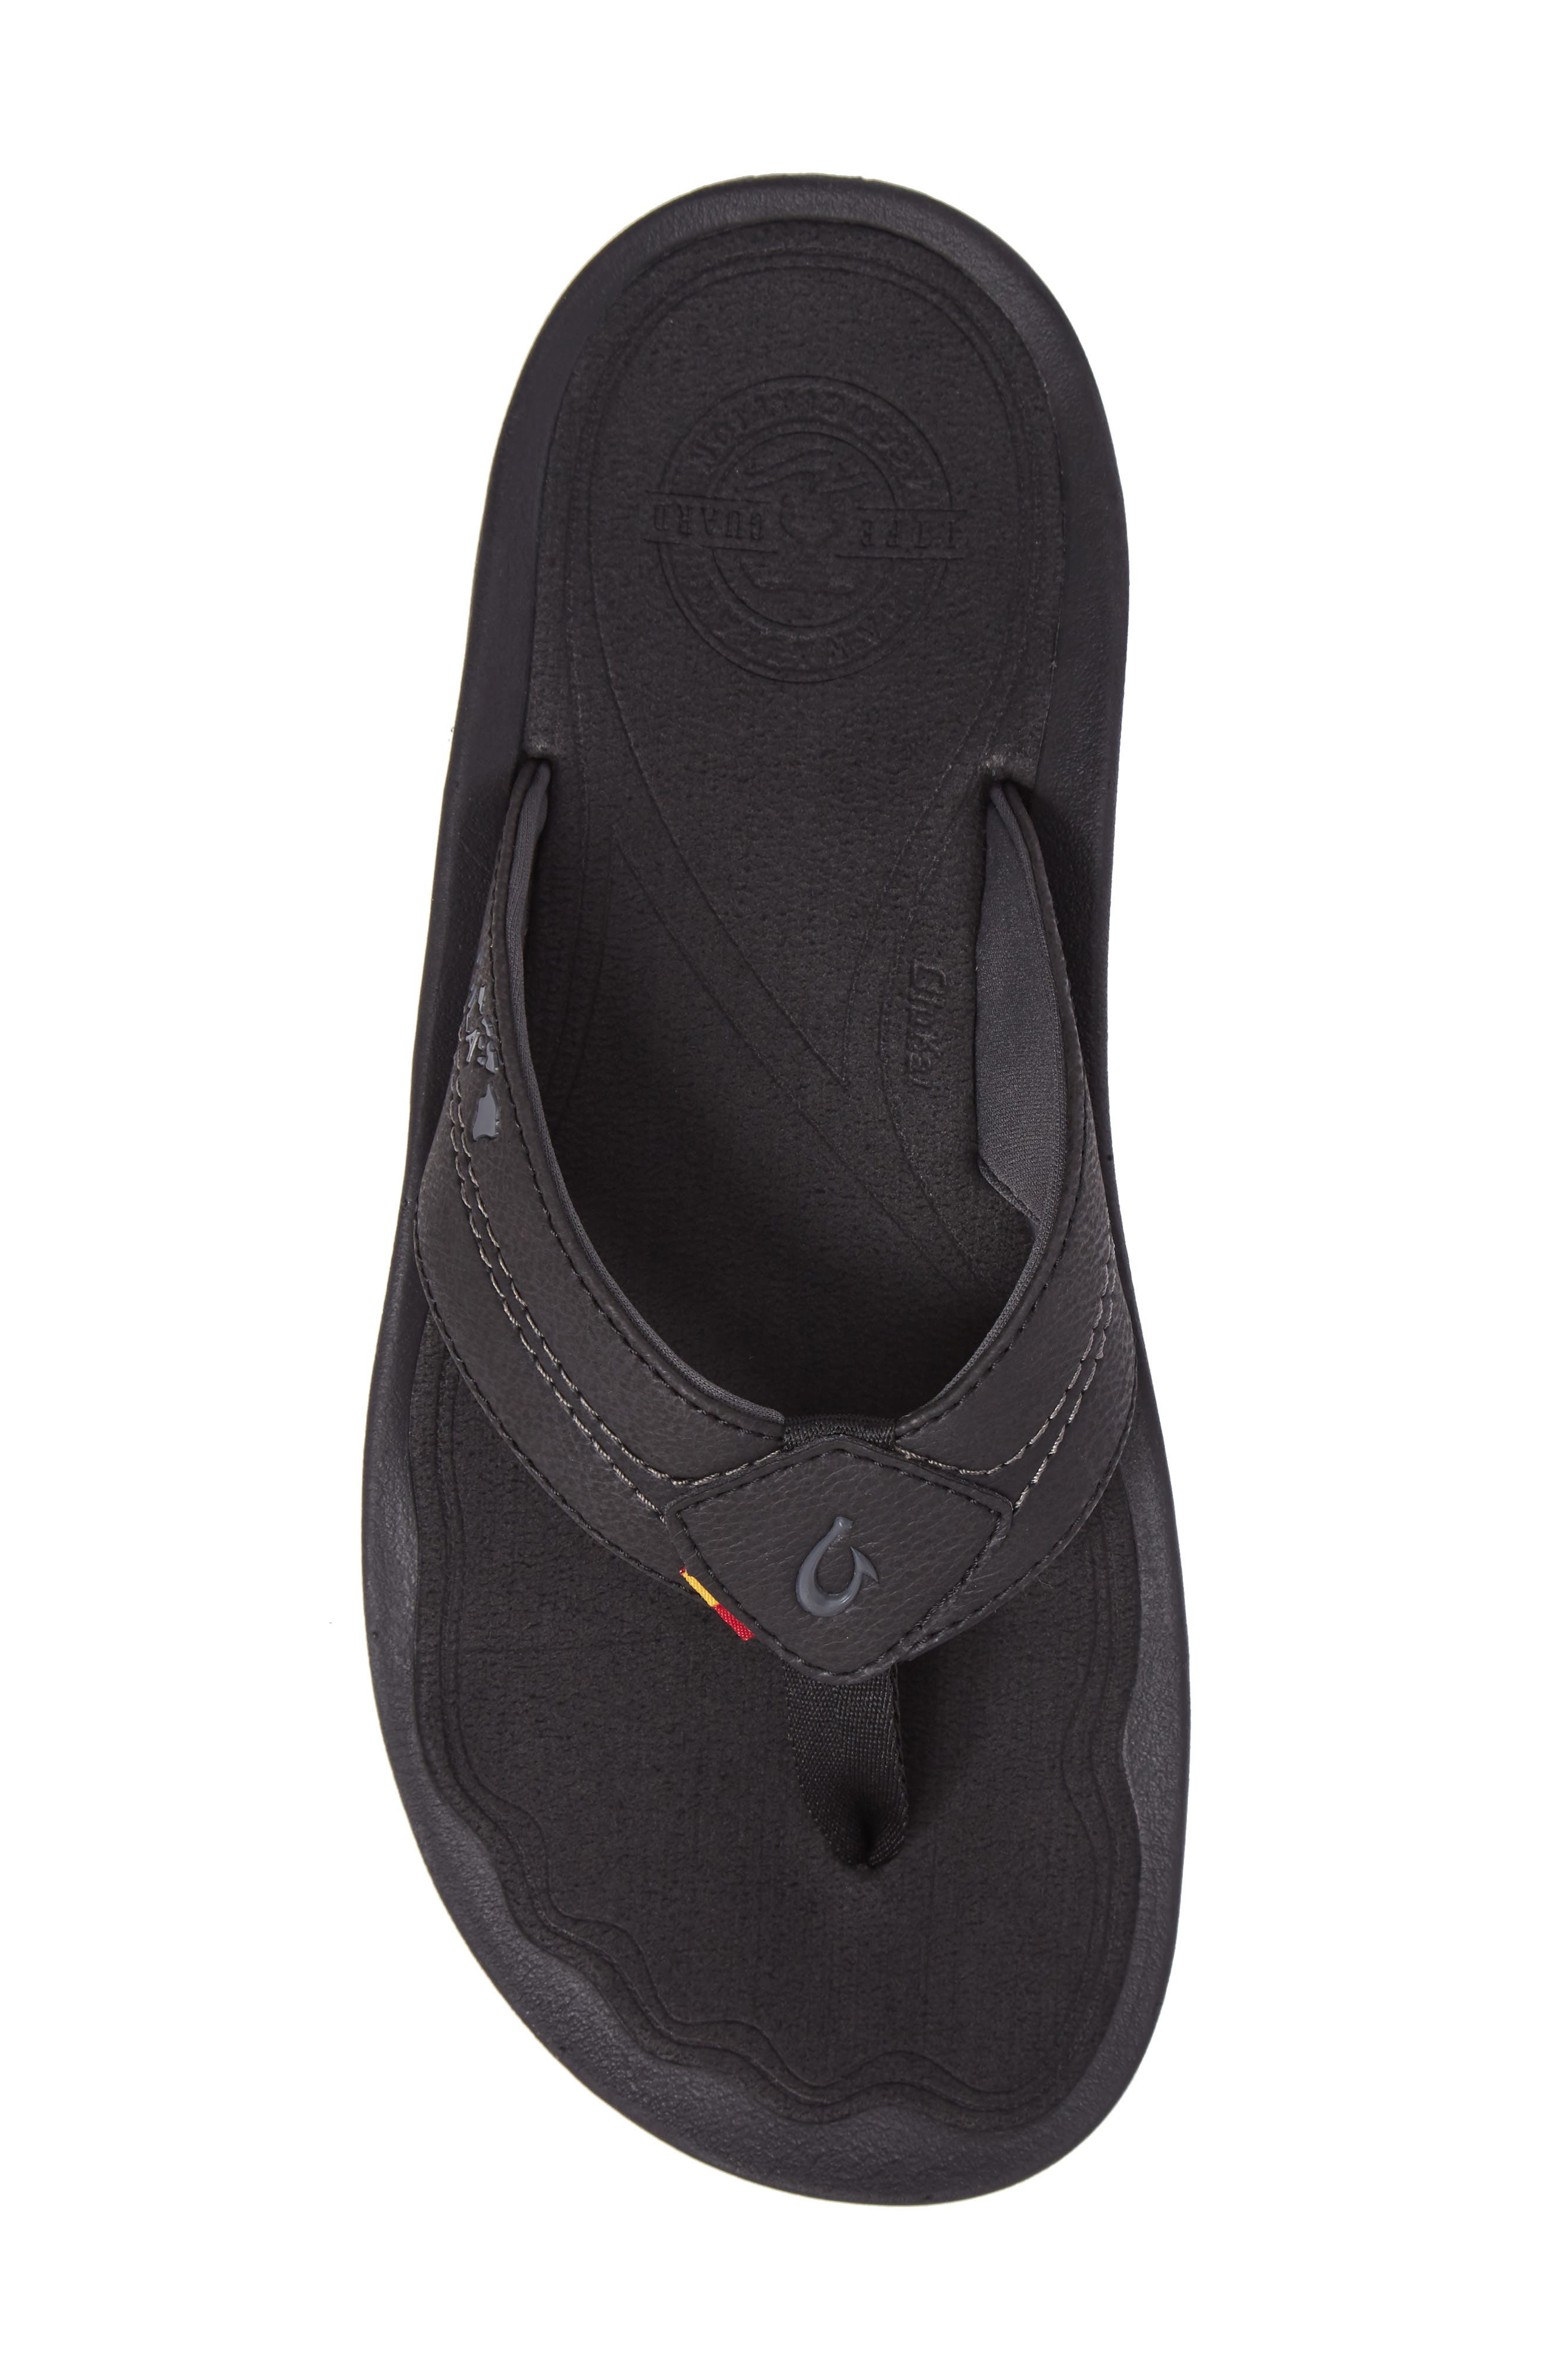 OLUKAI, Kipi Flip Flop, Alternate thumbnail 5, color, BLACK/ BLACK